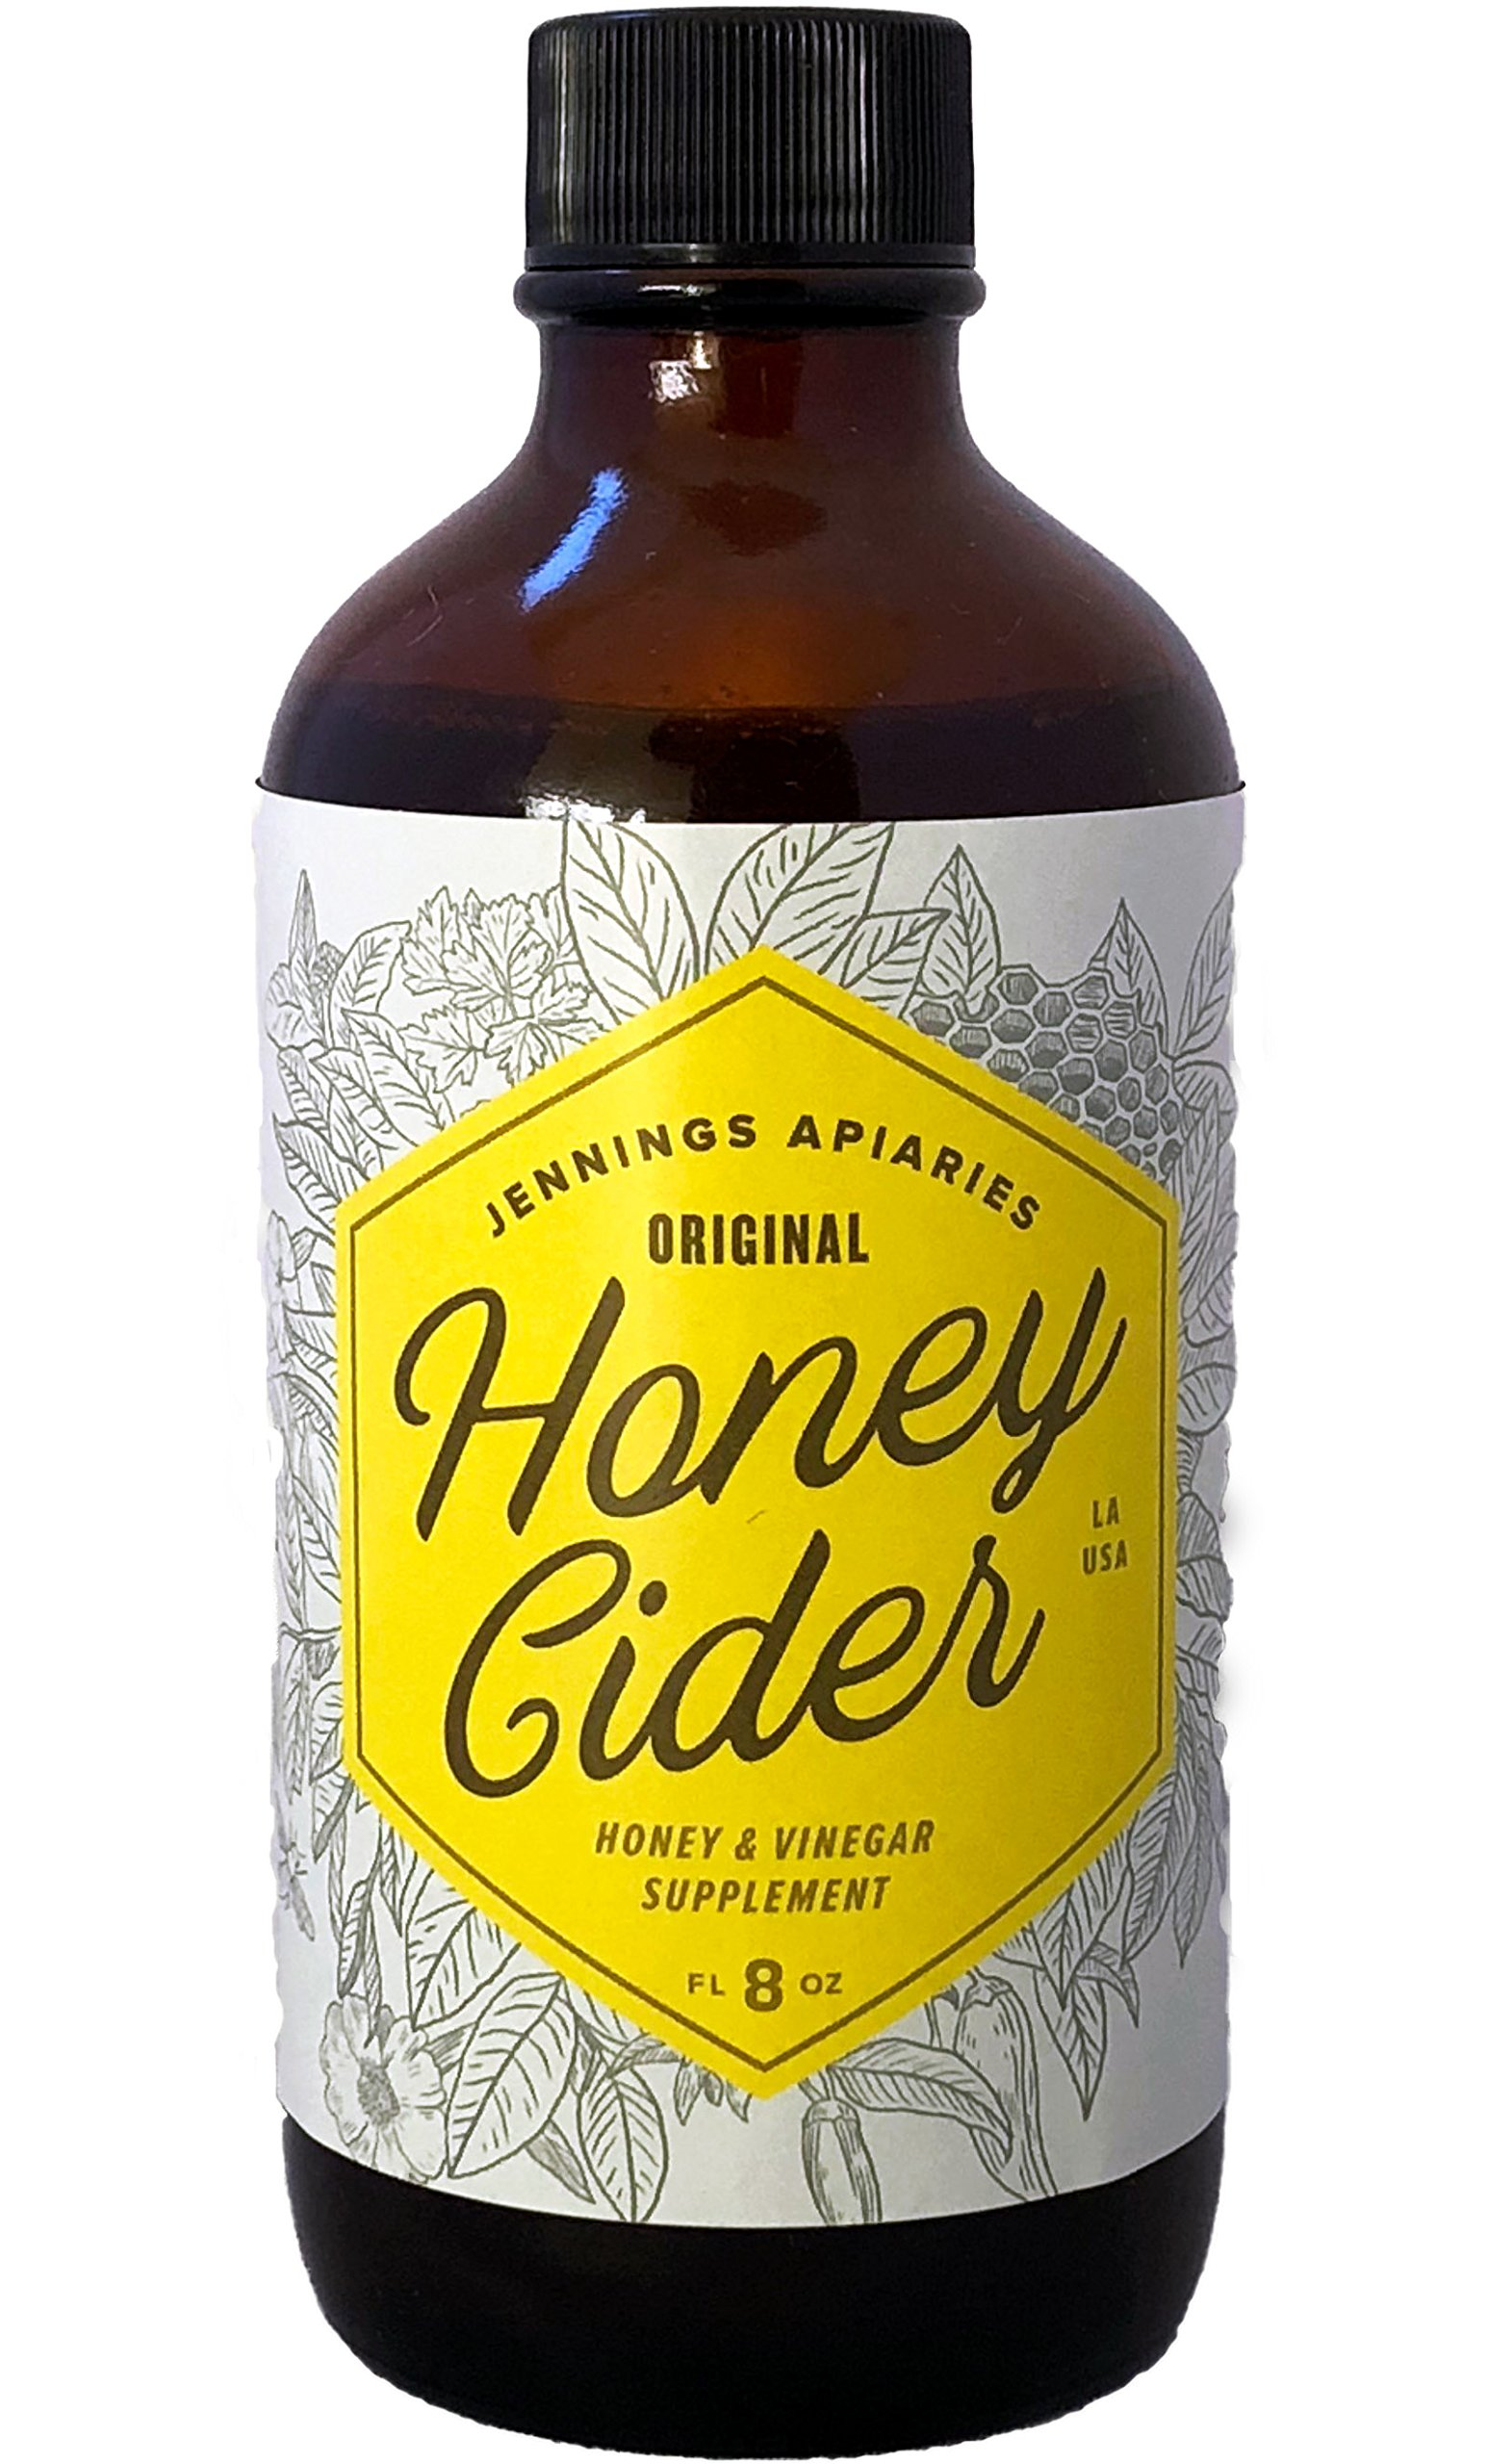 Honey Cider - Daily Apple Cider Vinegar and Honey Tonic - Fight Allergies and Colds Naturally - Made With Organic Ingredients - A Healthy Elixir Made By Beekeepers (8 oz) (8 oz Regular (Not Spicy)) by Jennings Apiaries